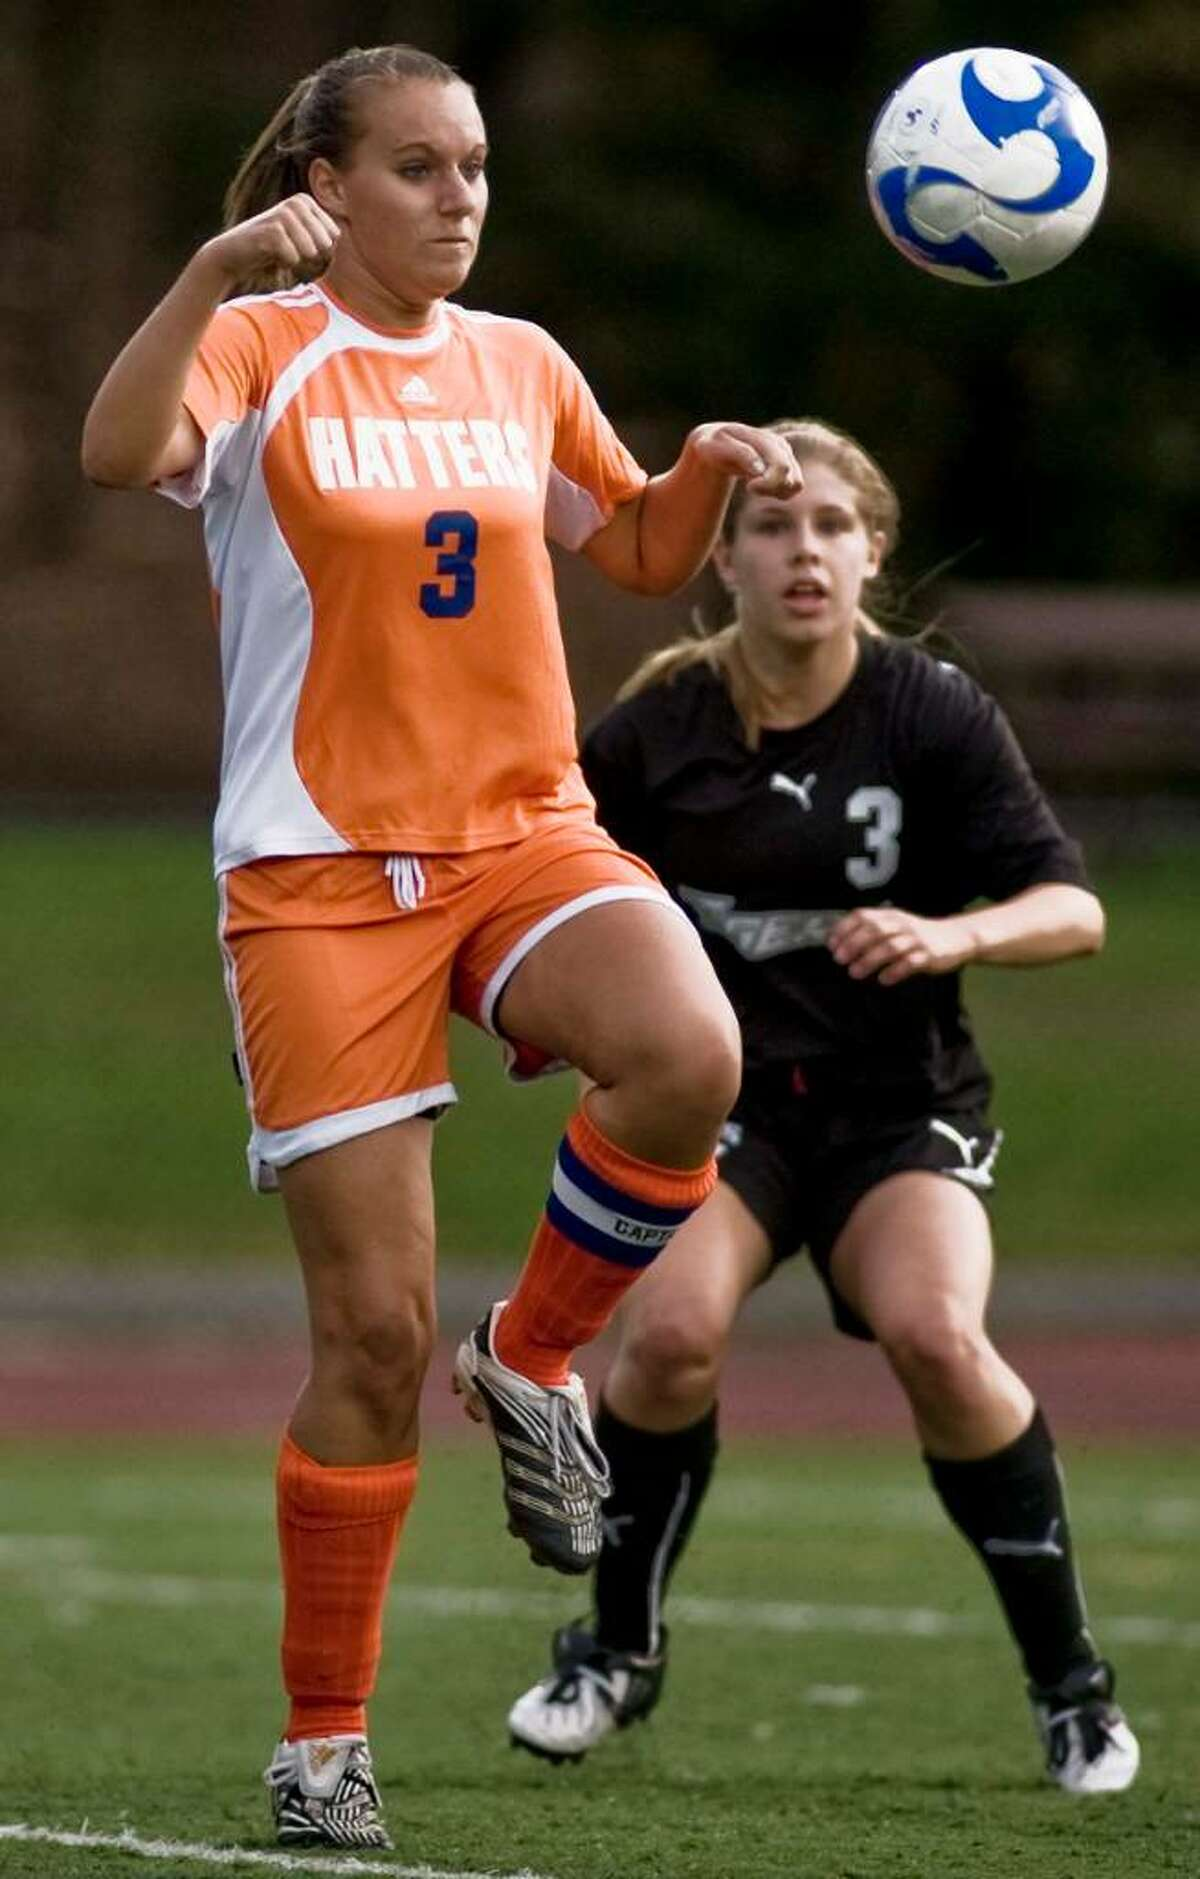 Danbury senior Melissa Michaelis taking the ball from the air with Ridgefield senior Kaitlin Gerber watching the play at the girls soccer game at Ridgefield. Tuesday, Sept. 22, 2009